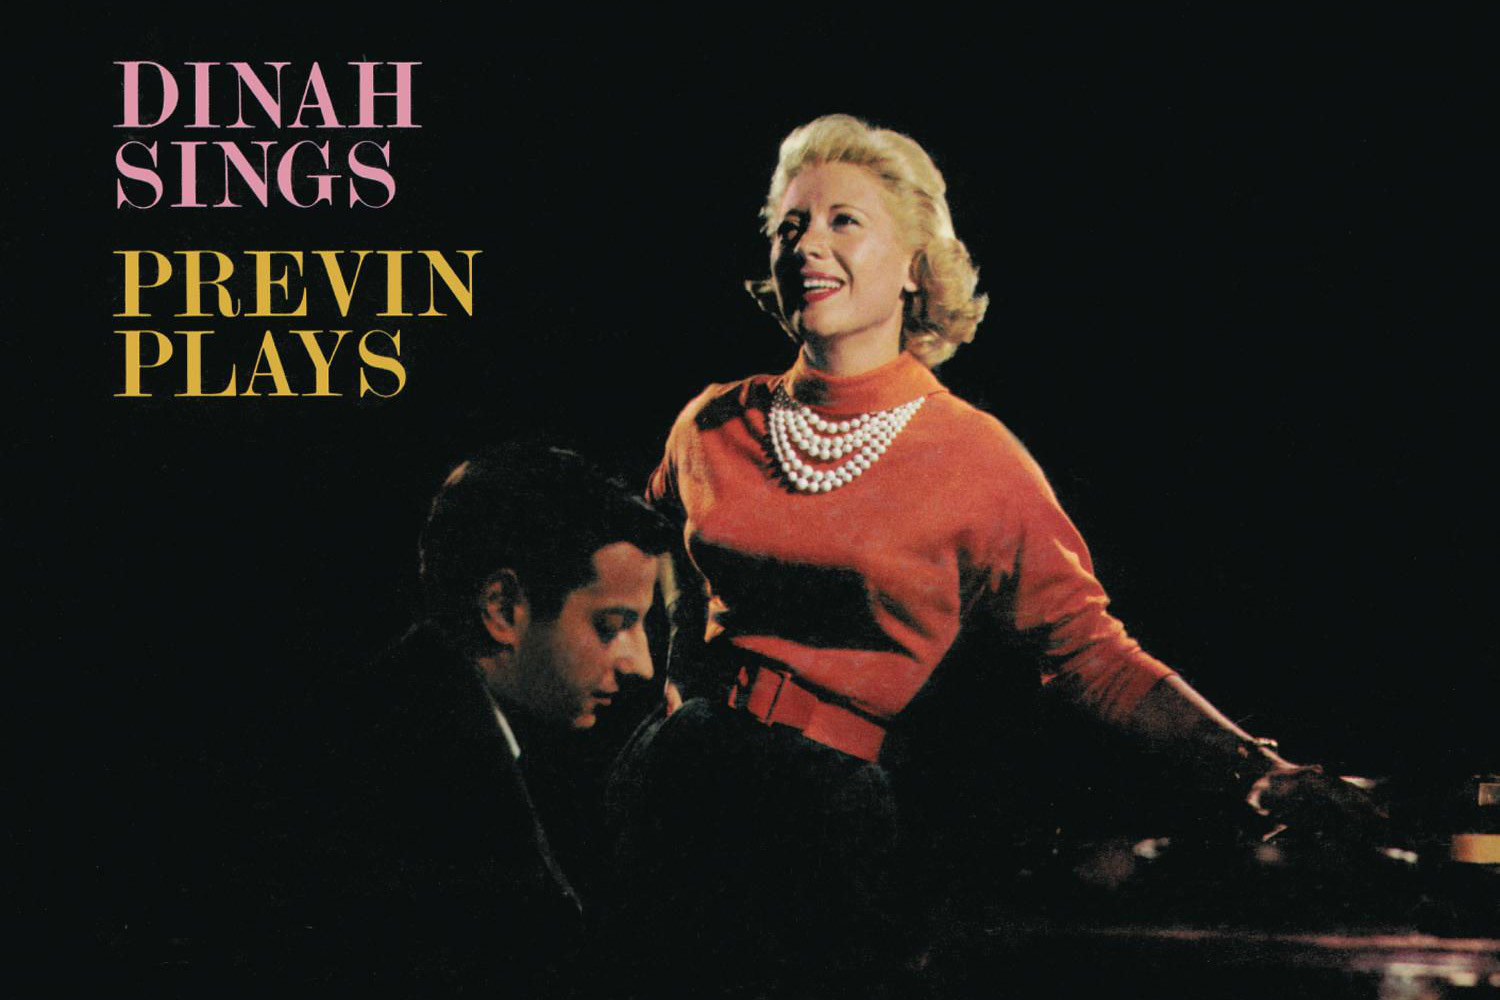 """""""Dinah Sings / Previn Plays,"""" Dinah Shore's 1960 Capitol release, teams the singer up with pianist André Previn for a collection of intimate recordings of favorites from the Great American Songbook."""